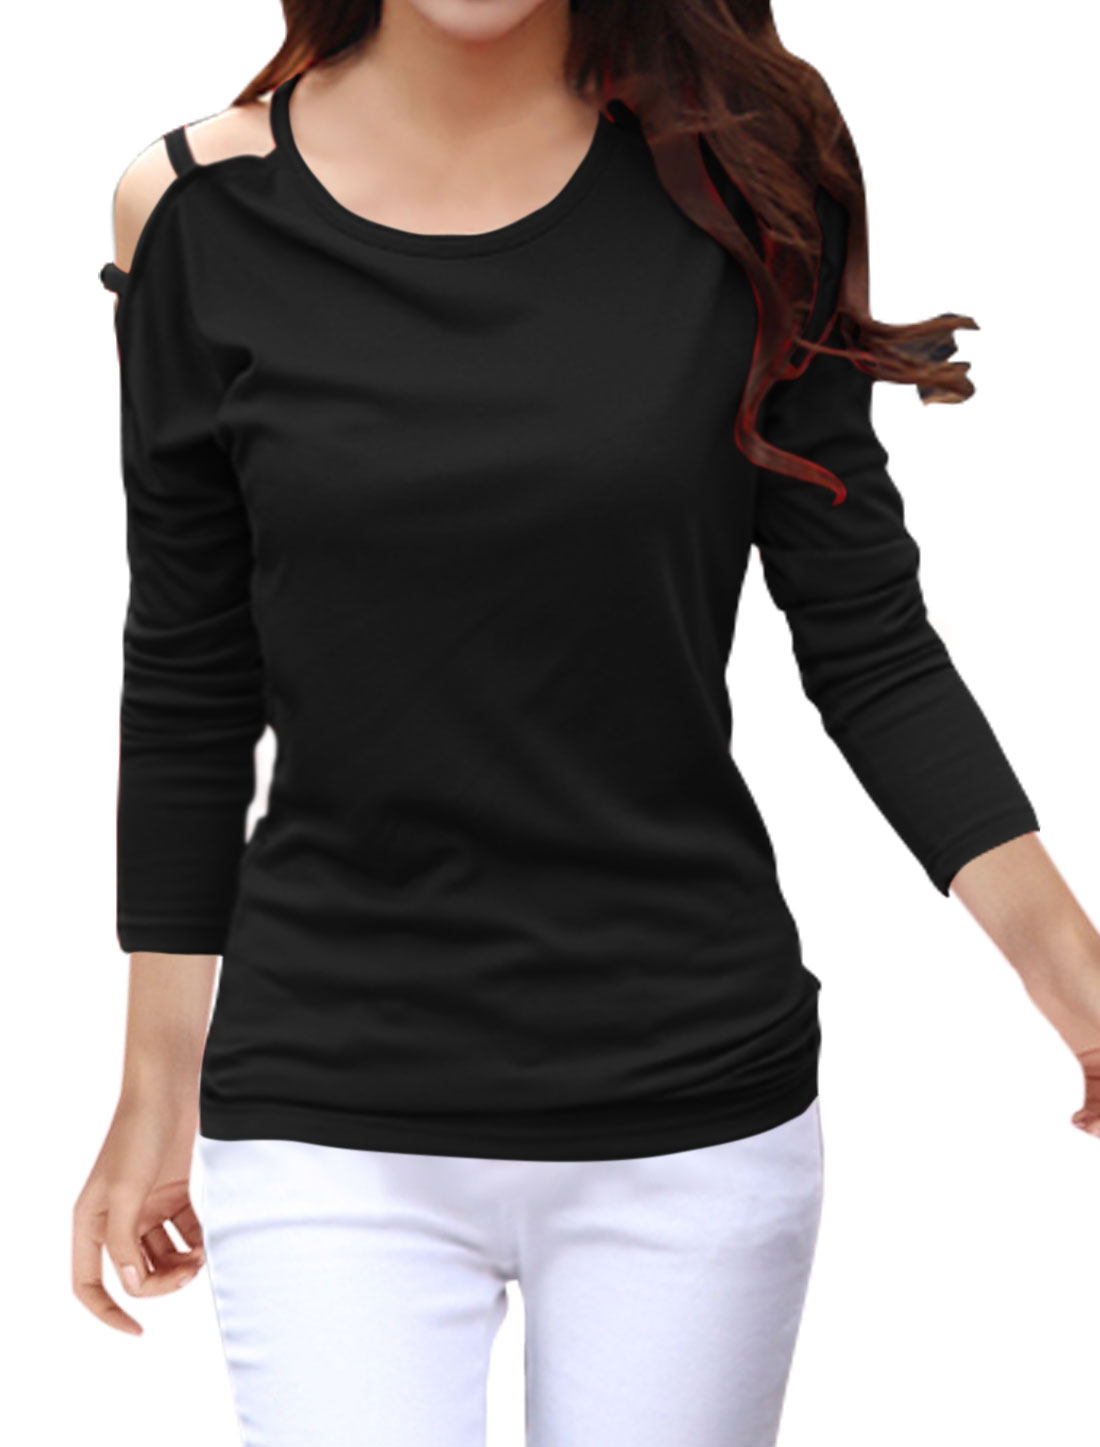 Women Round Neck Cut Out Dolman Sleeves Top Black M